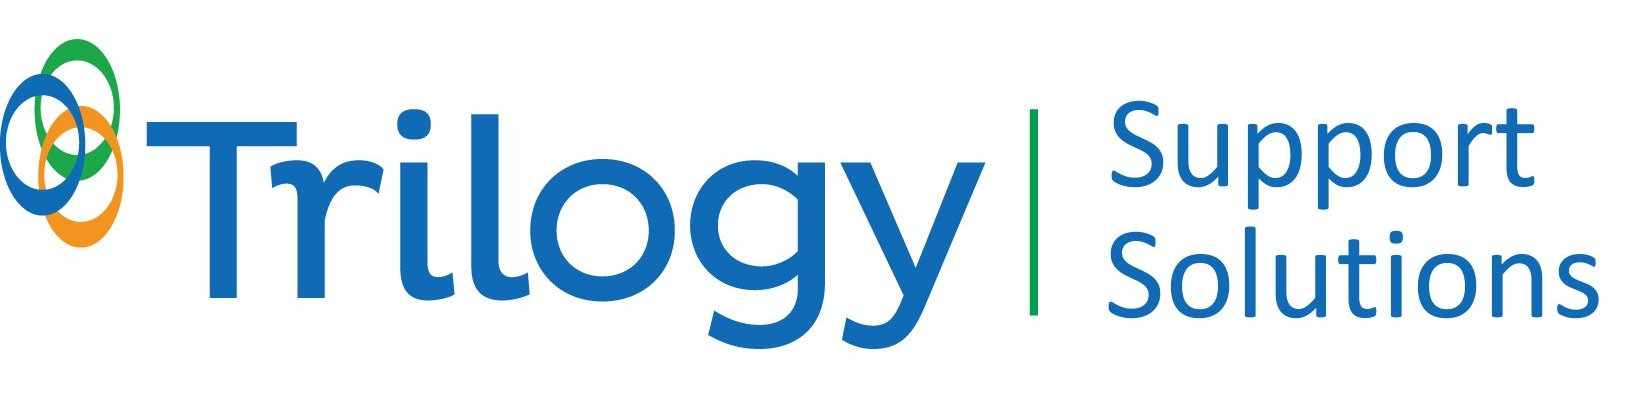 Trilogy Support Solutions logo